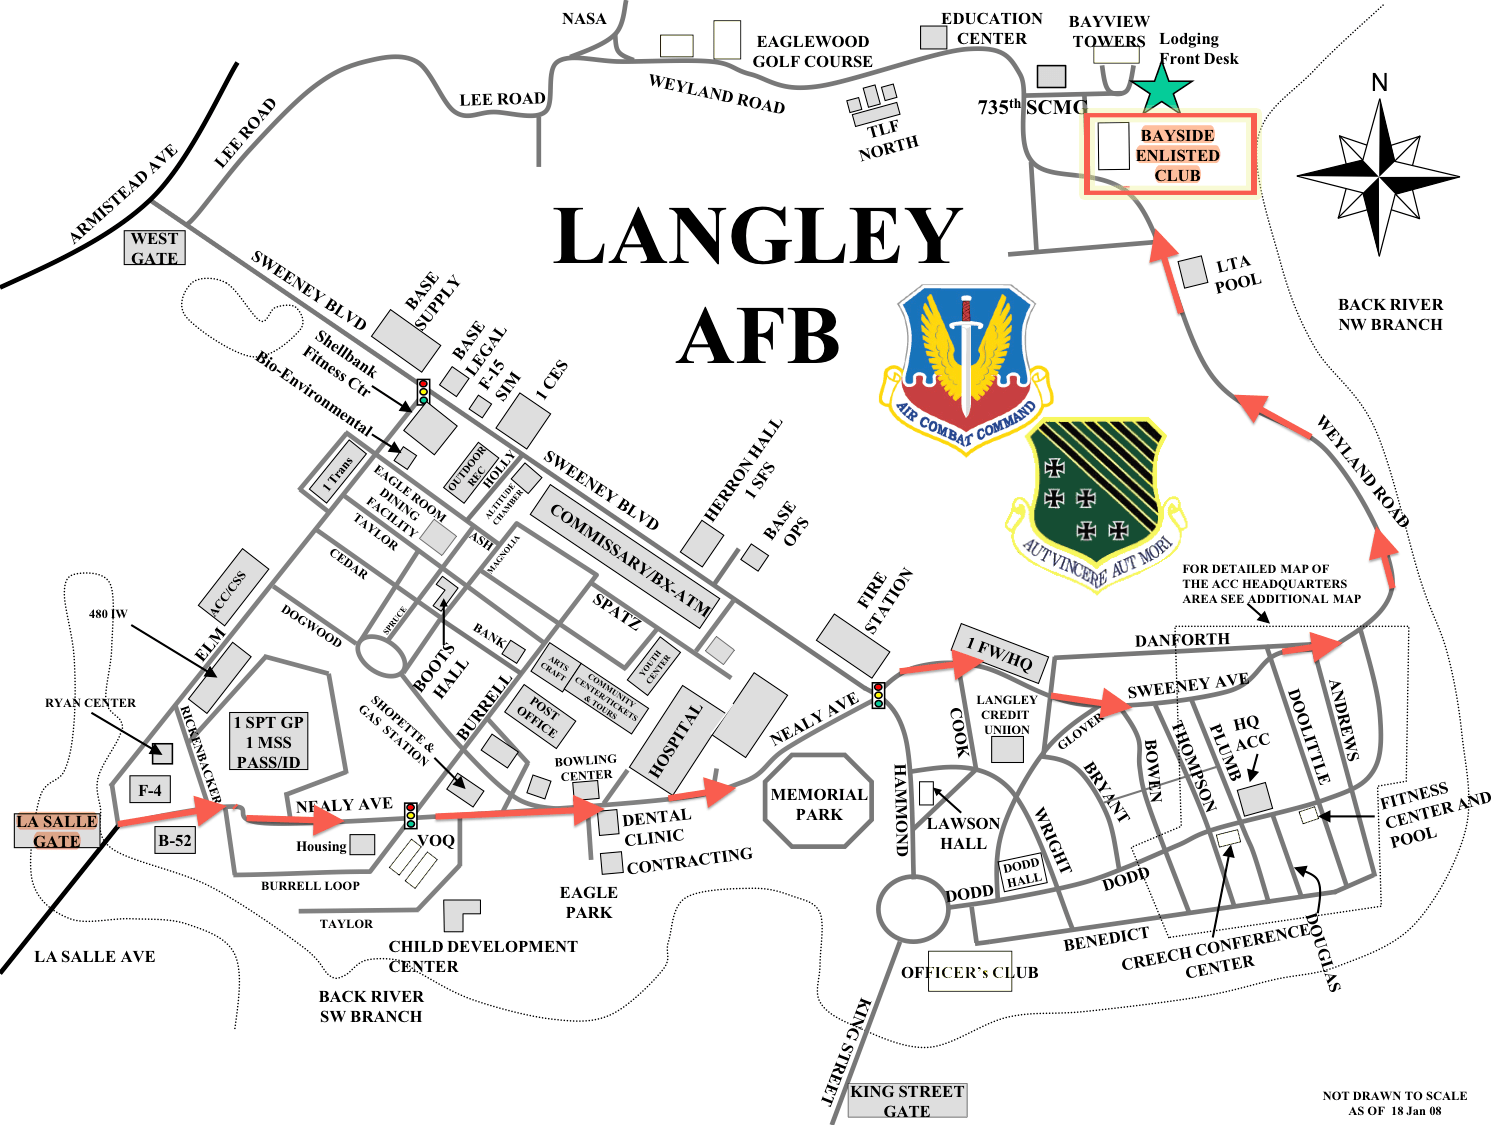 Langley Afb Map Langley Afb Spaceanet Langley Afb Map Langley Afb - Edwards afb map